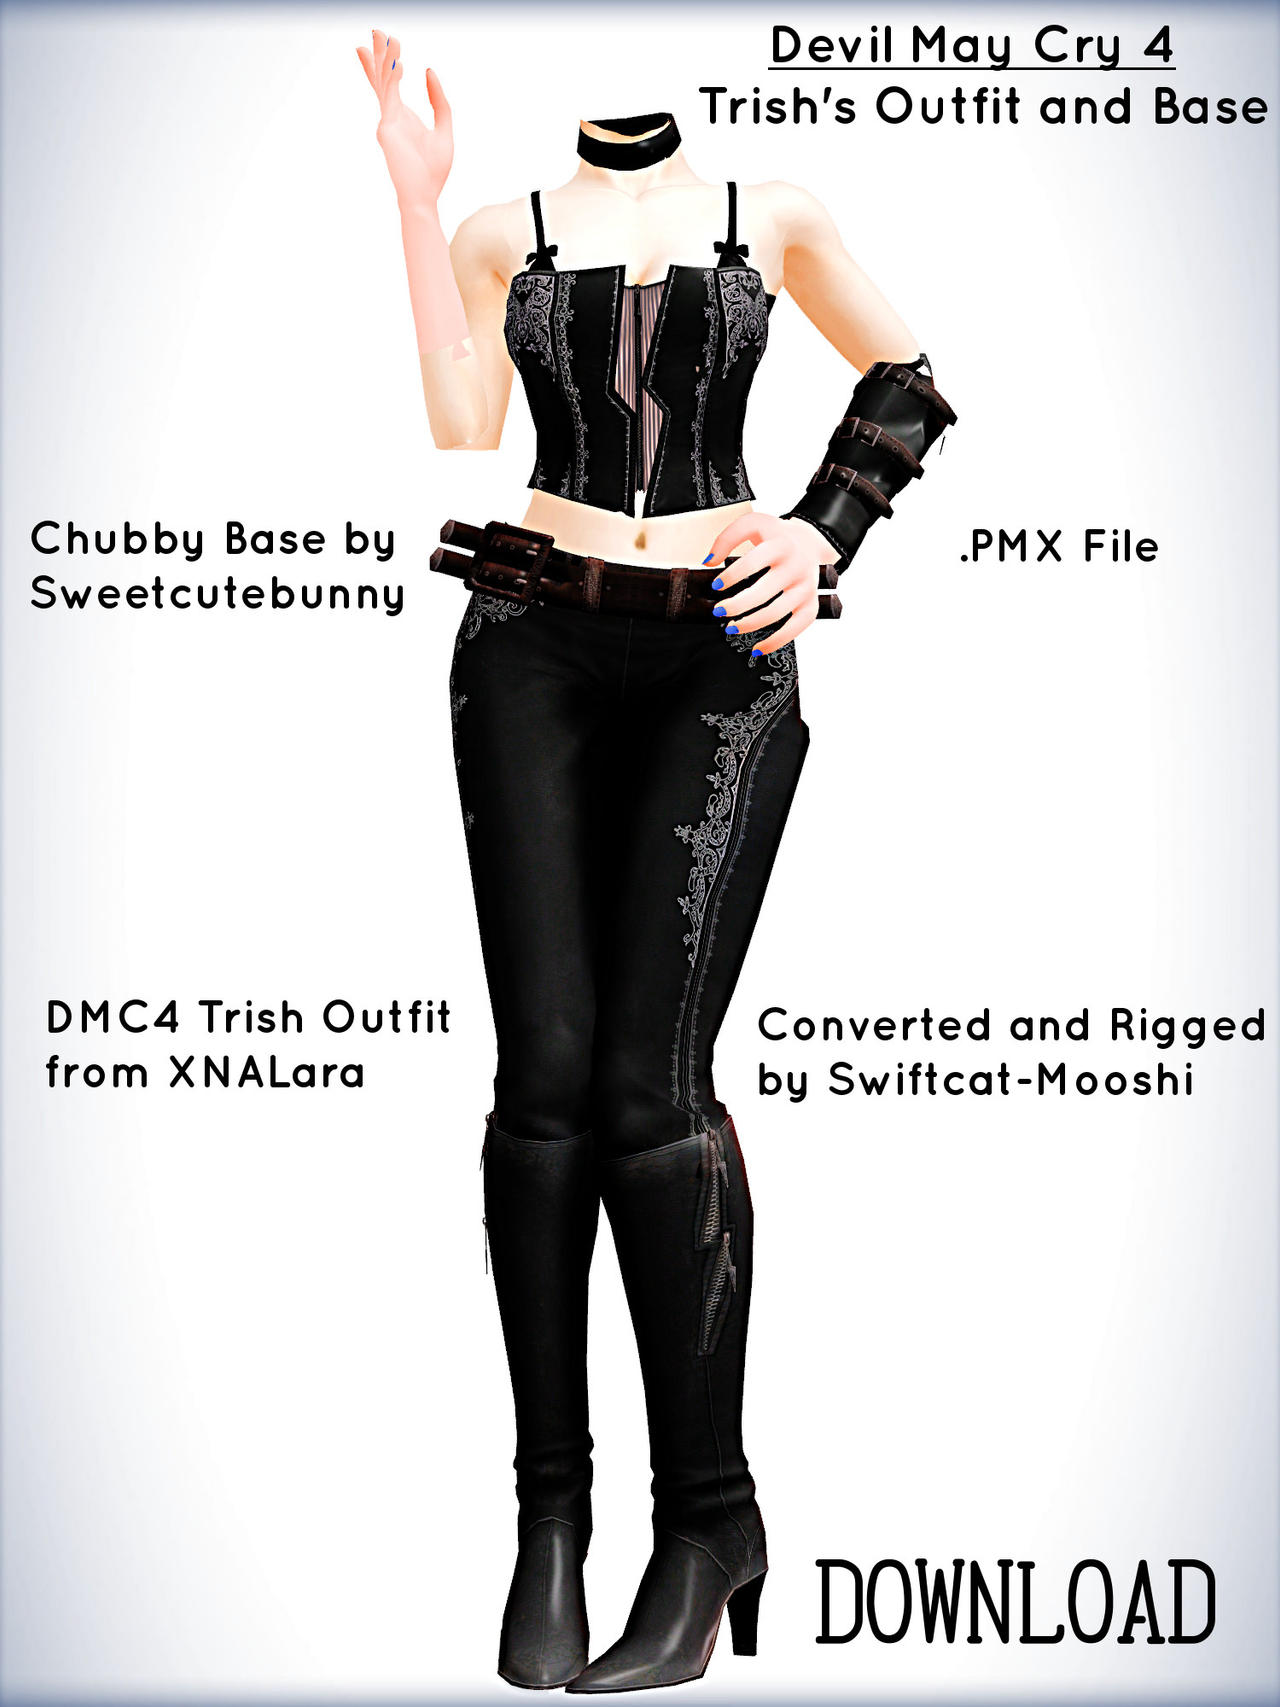 Devil May Cry 4 Trish Base Outfit DL by xXFrenchToastXx